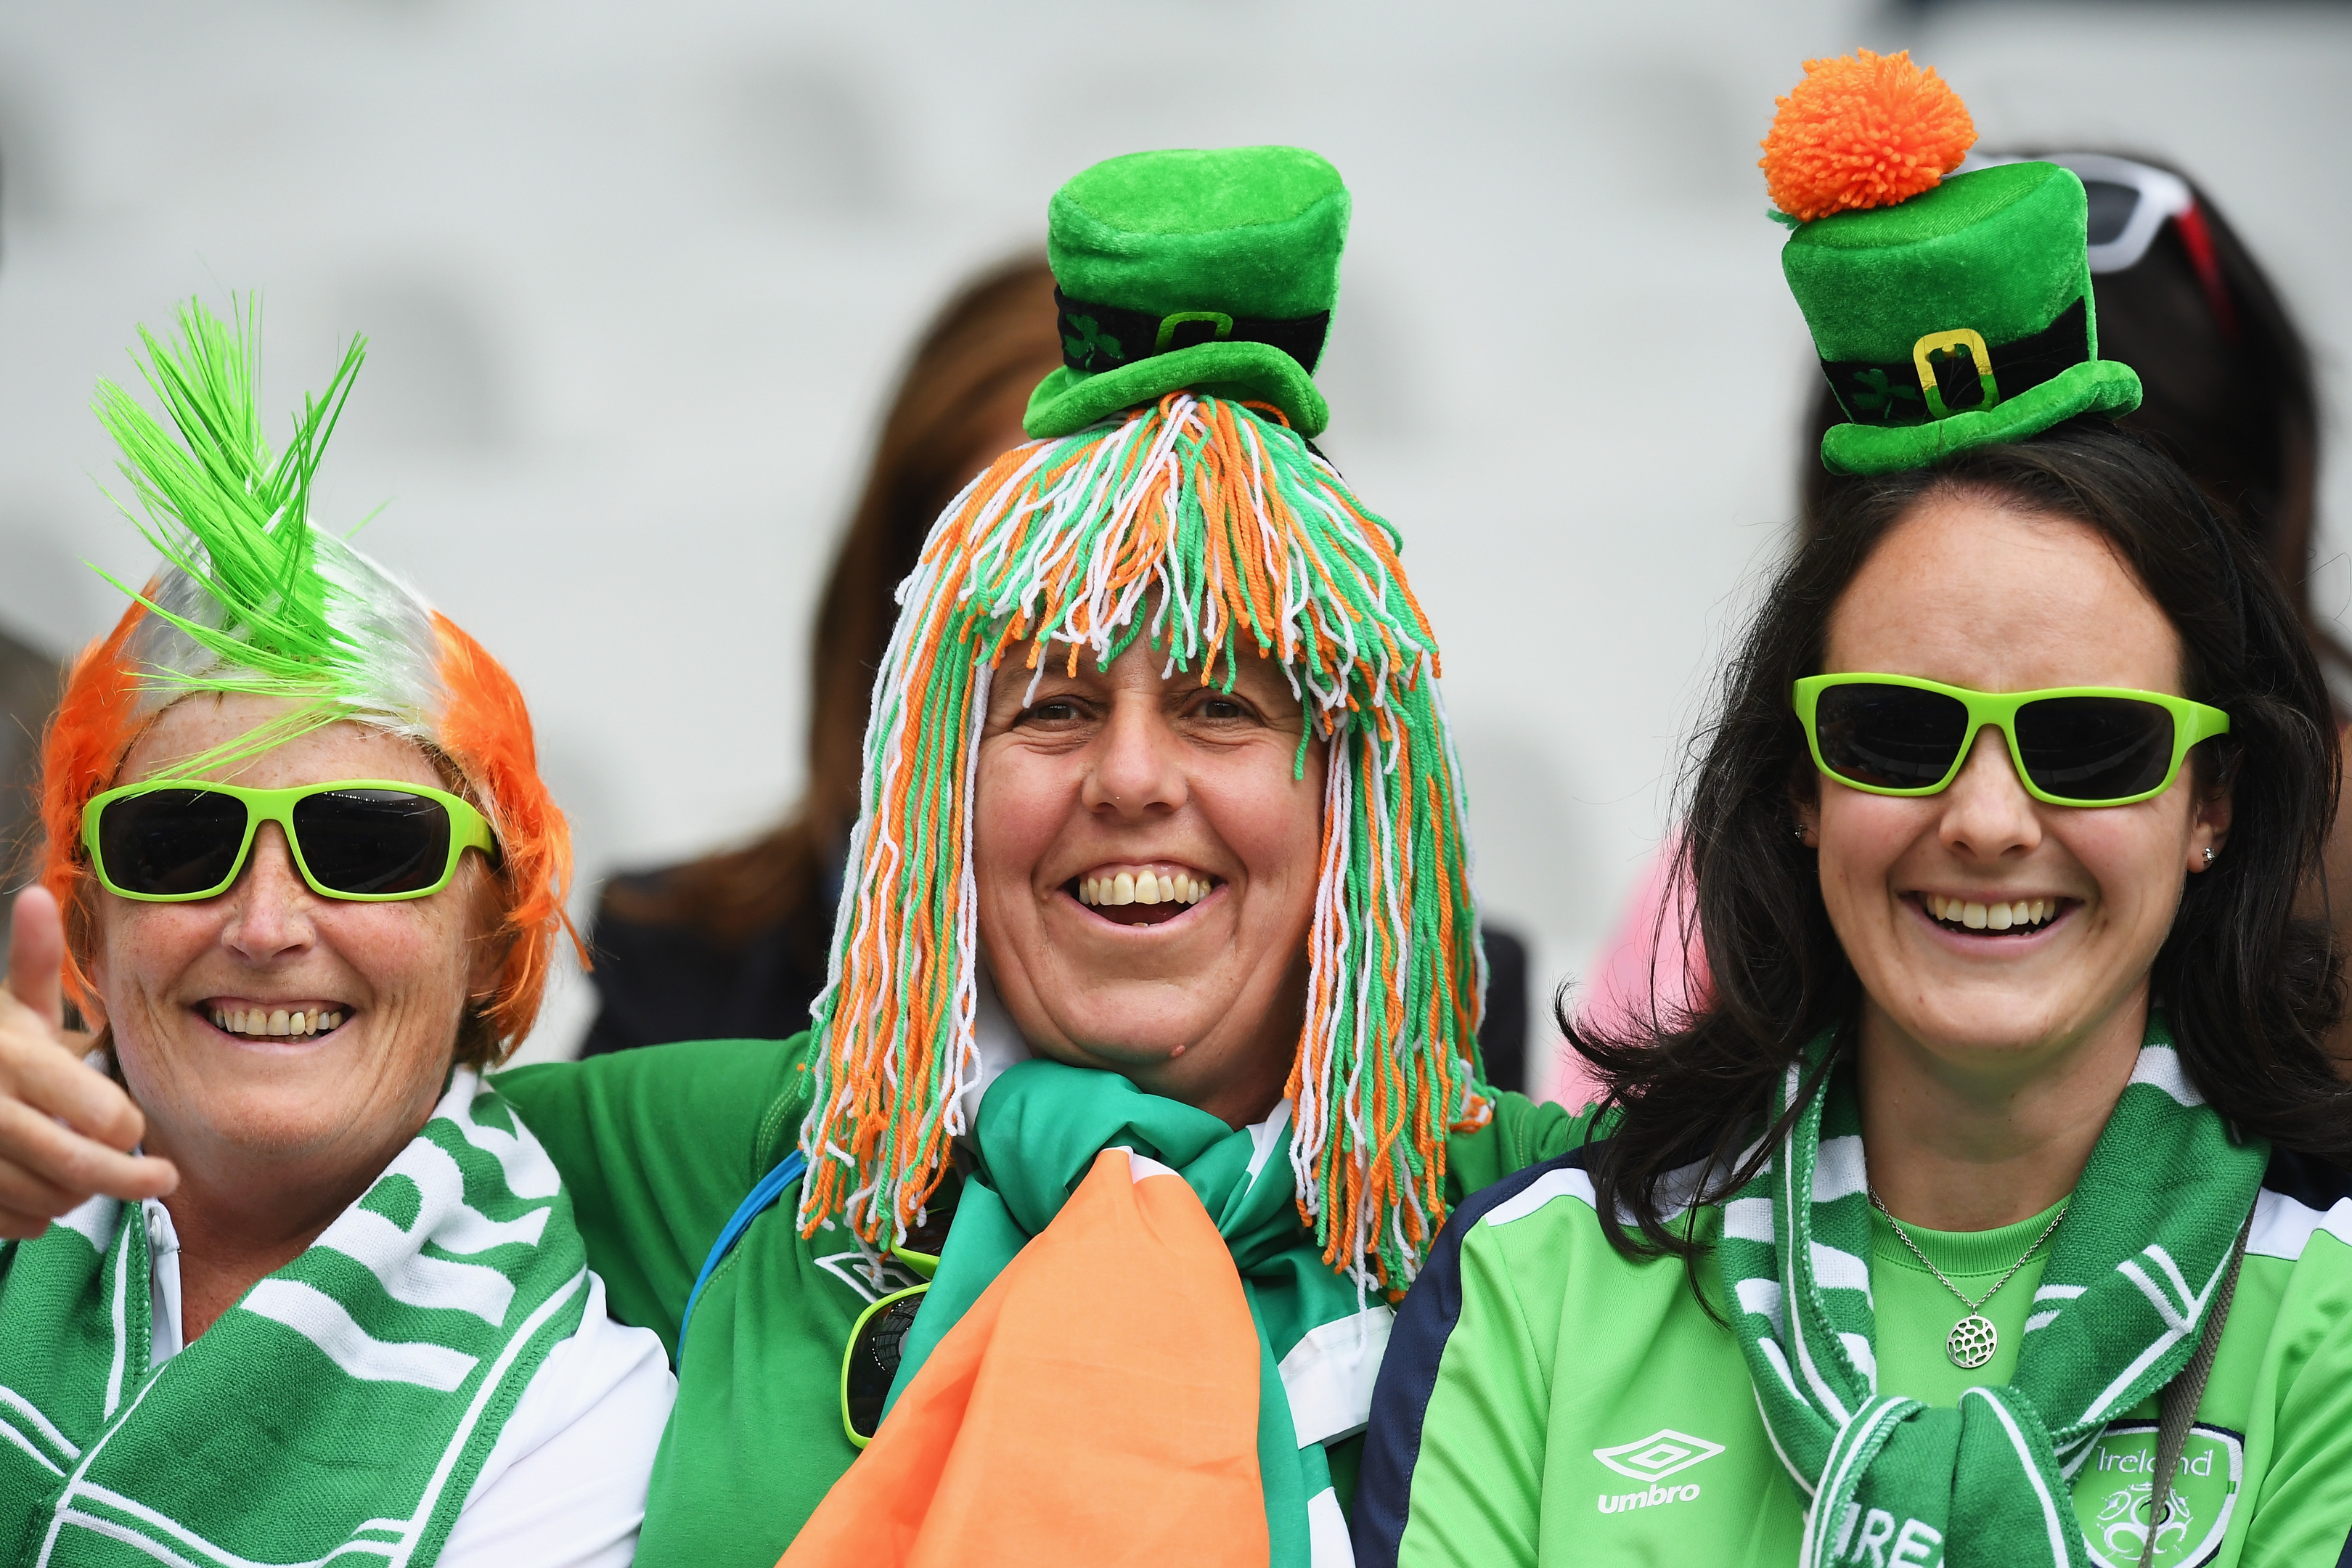 Ireland supporters enjoy the atmosphere at Euro 2016.